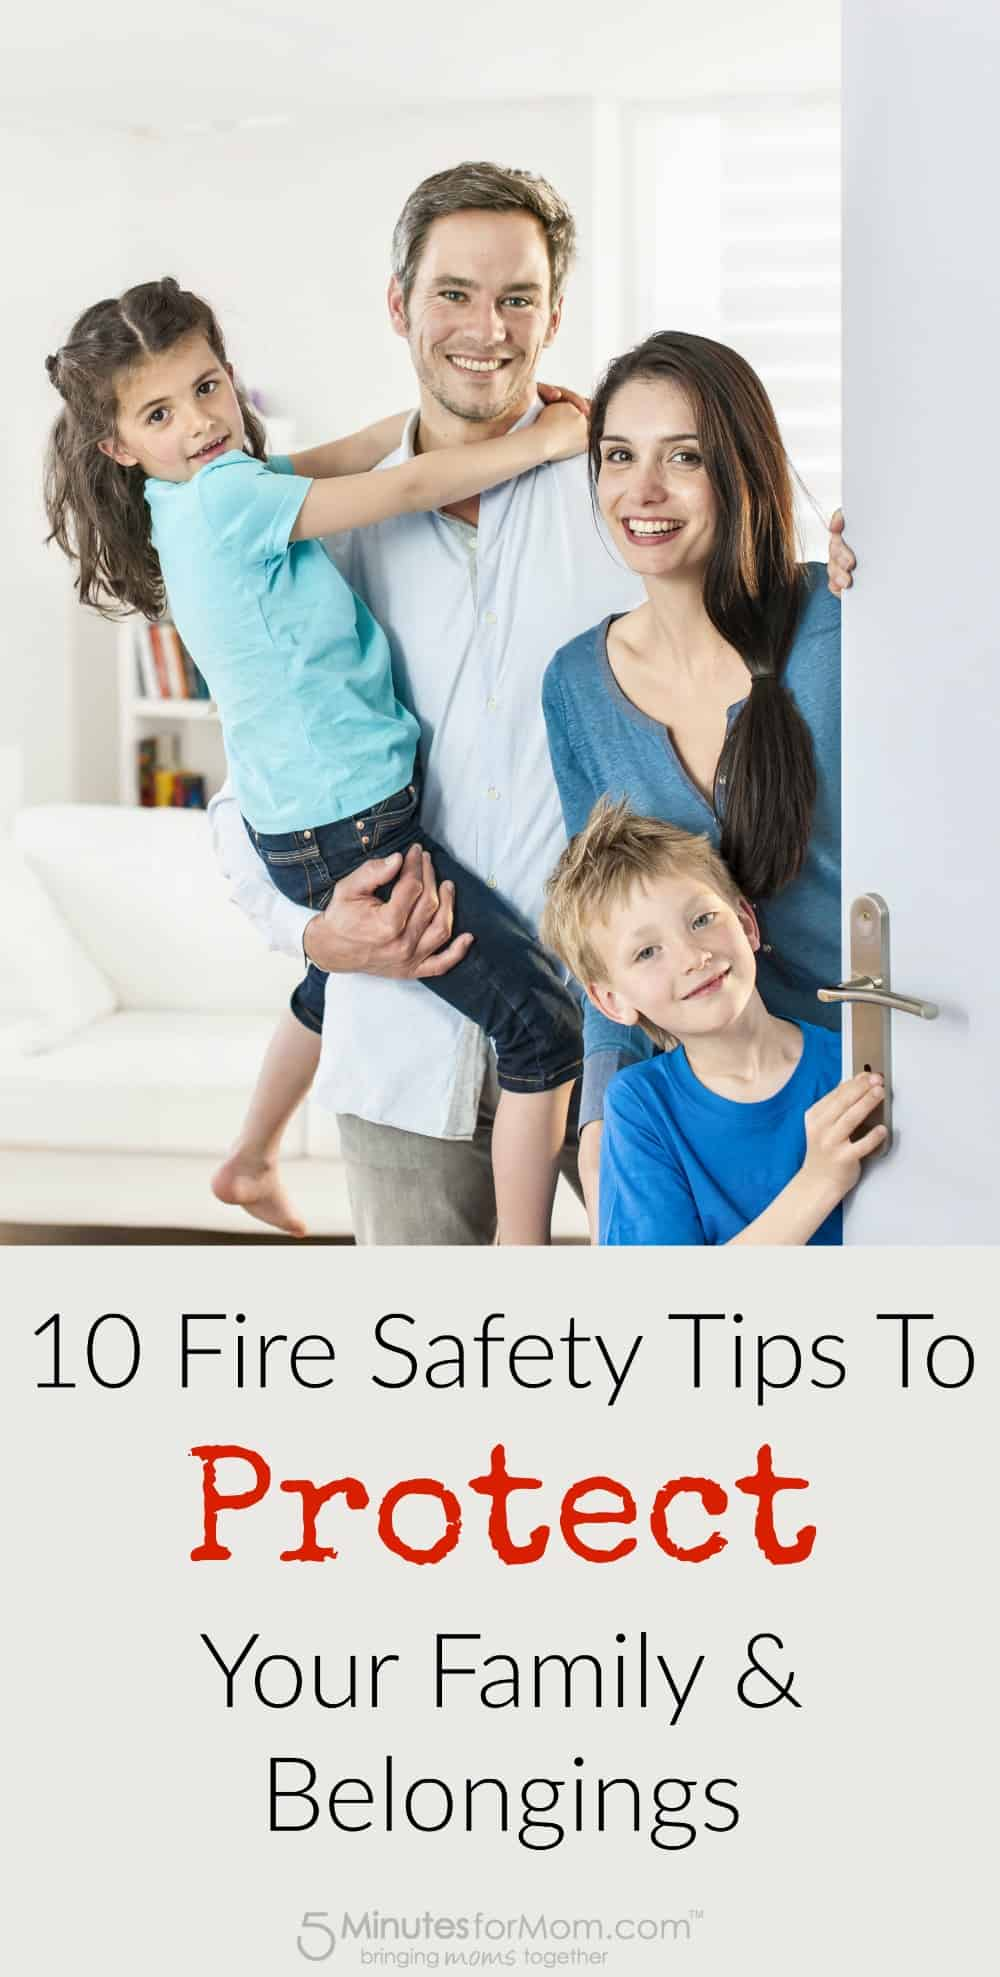 10 Family Safety Tips to Protect Your Family and Belongings